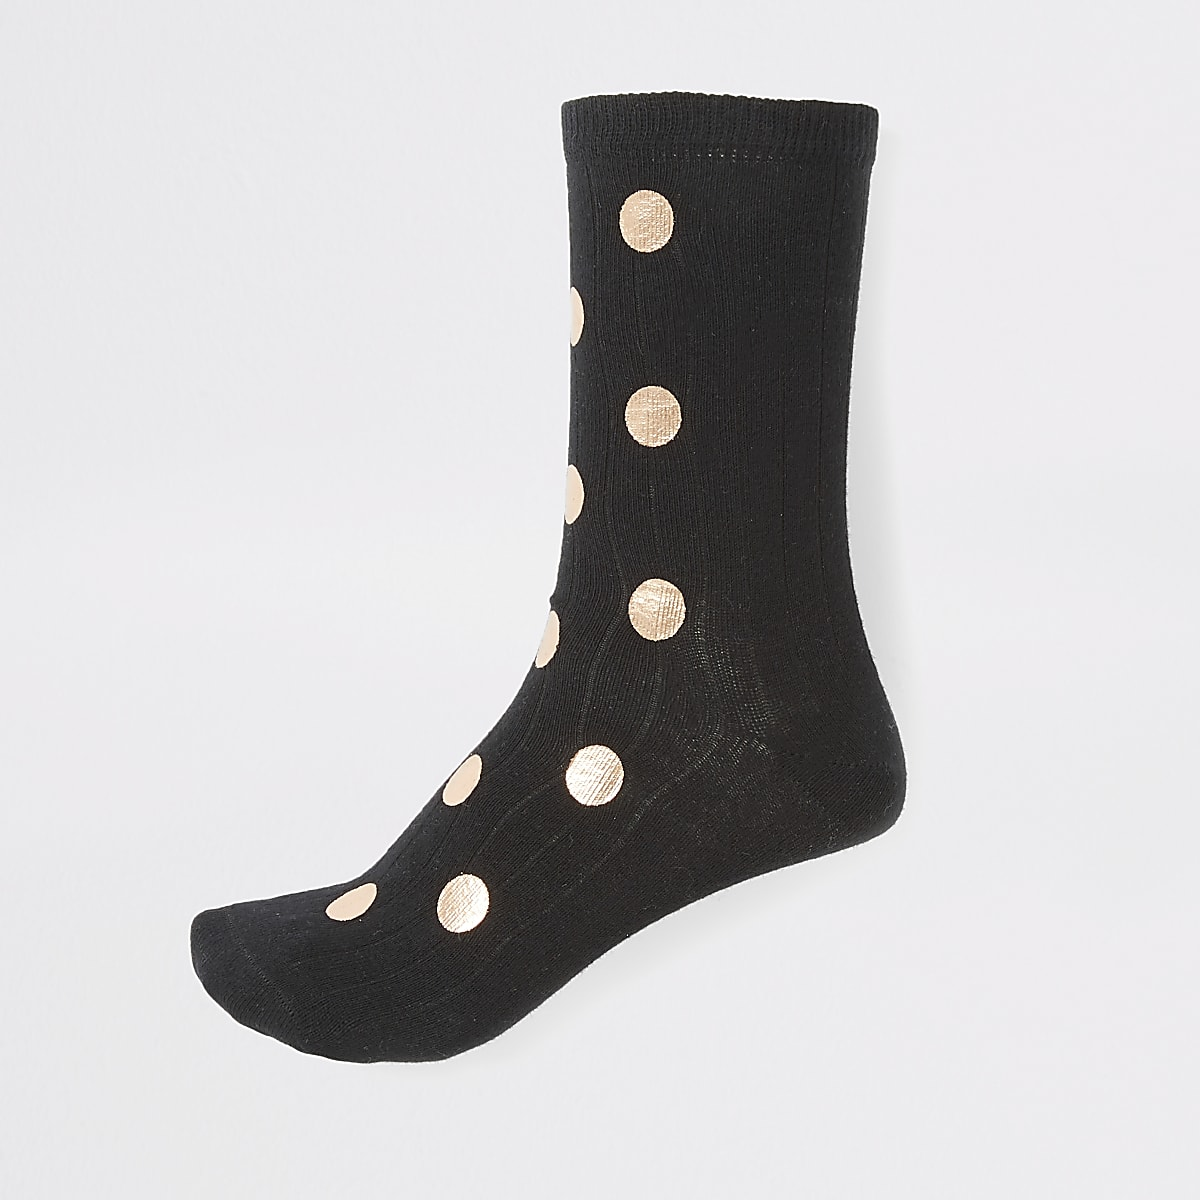 Black foil polka dot printed ankle socks